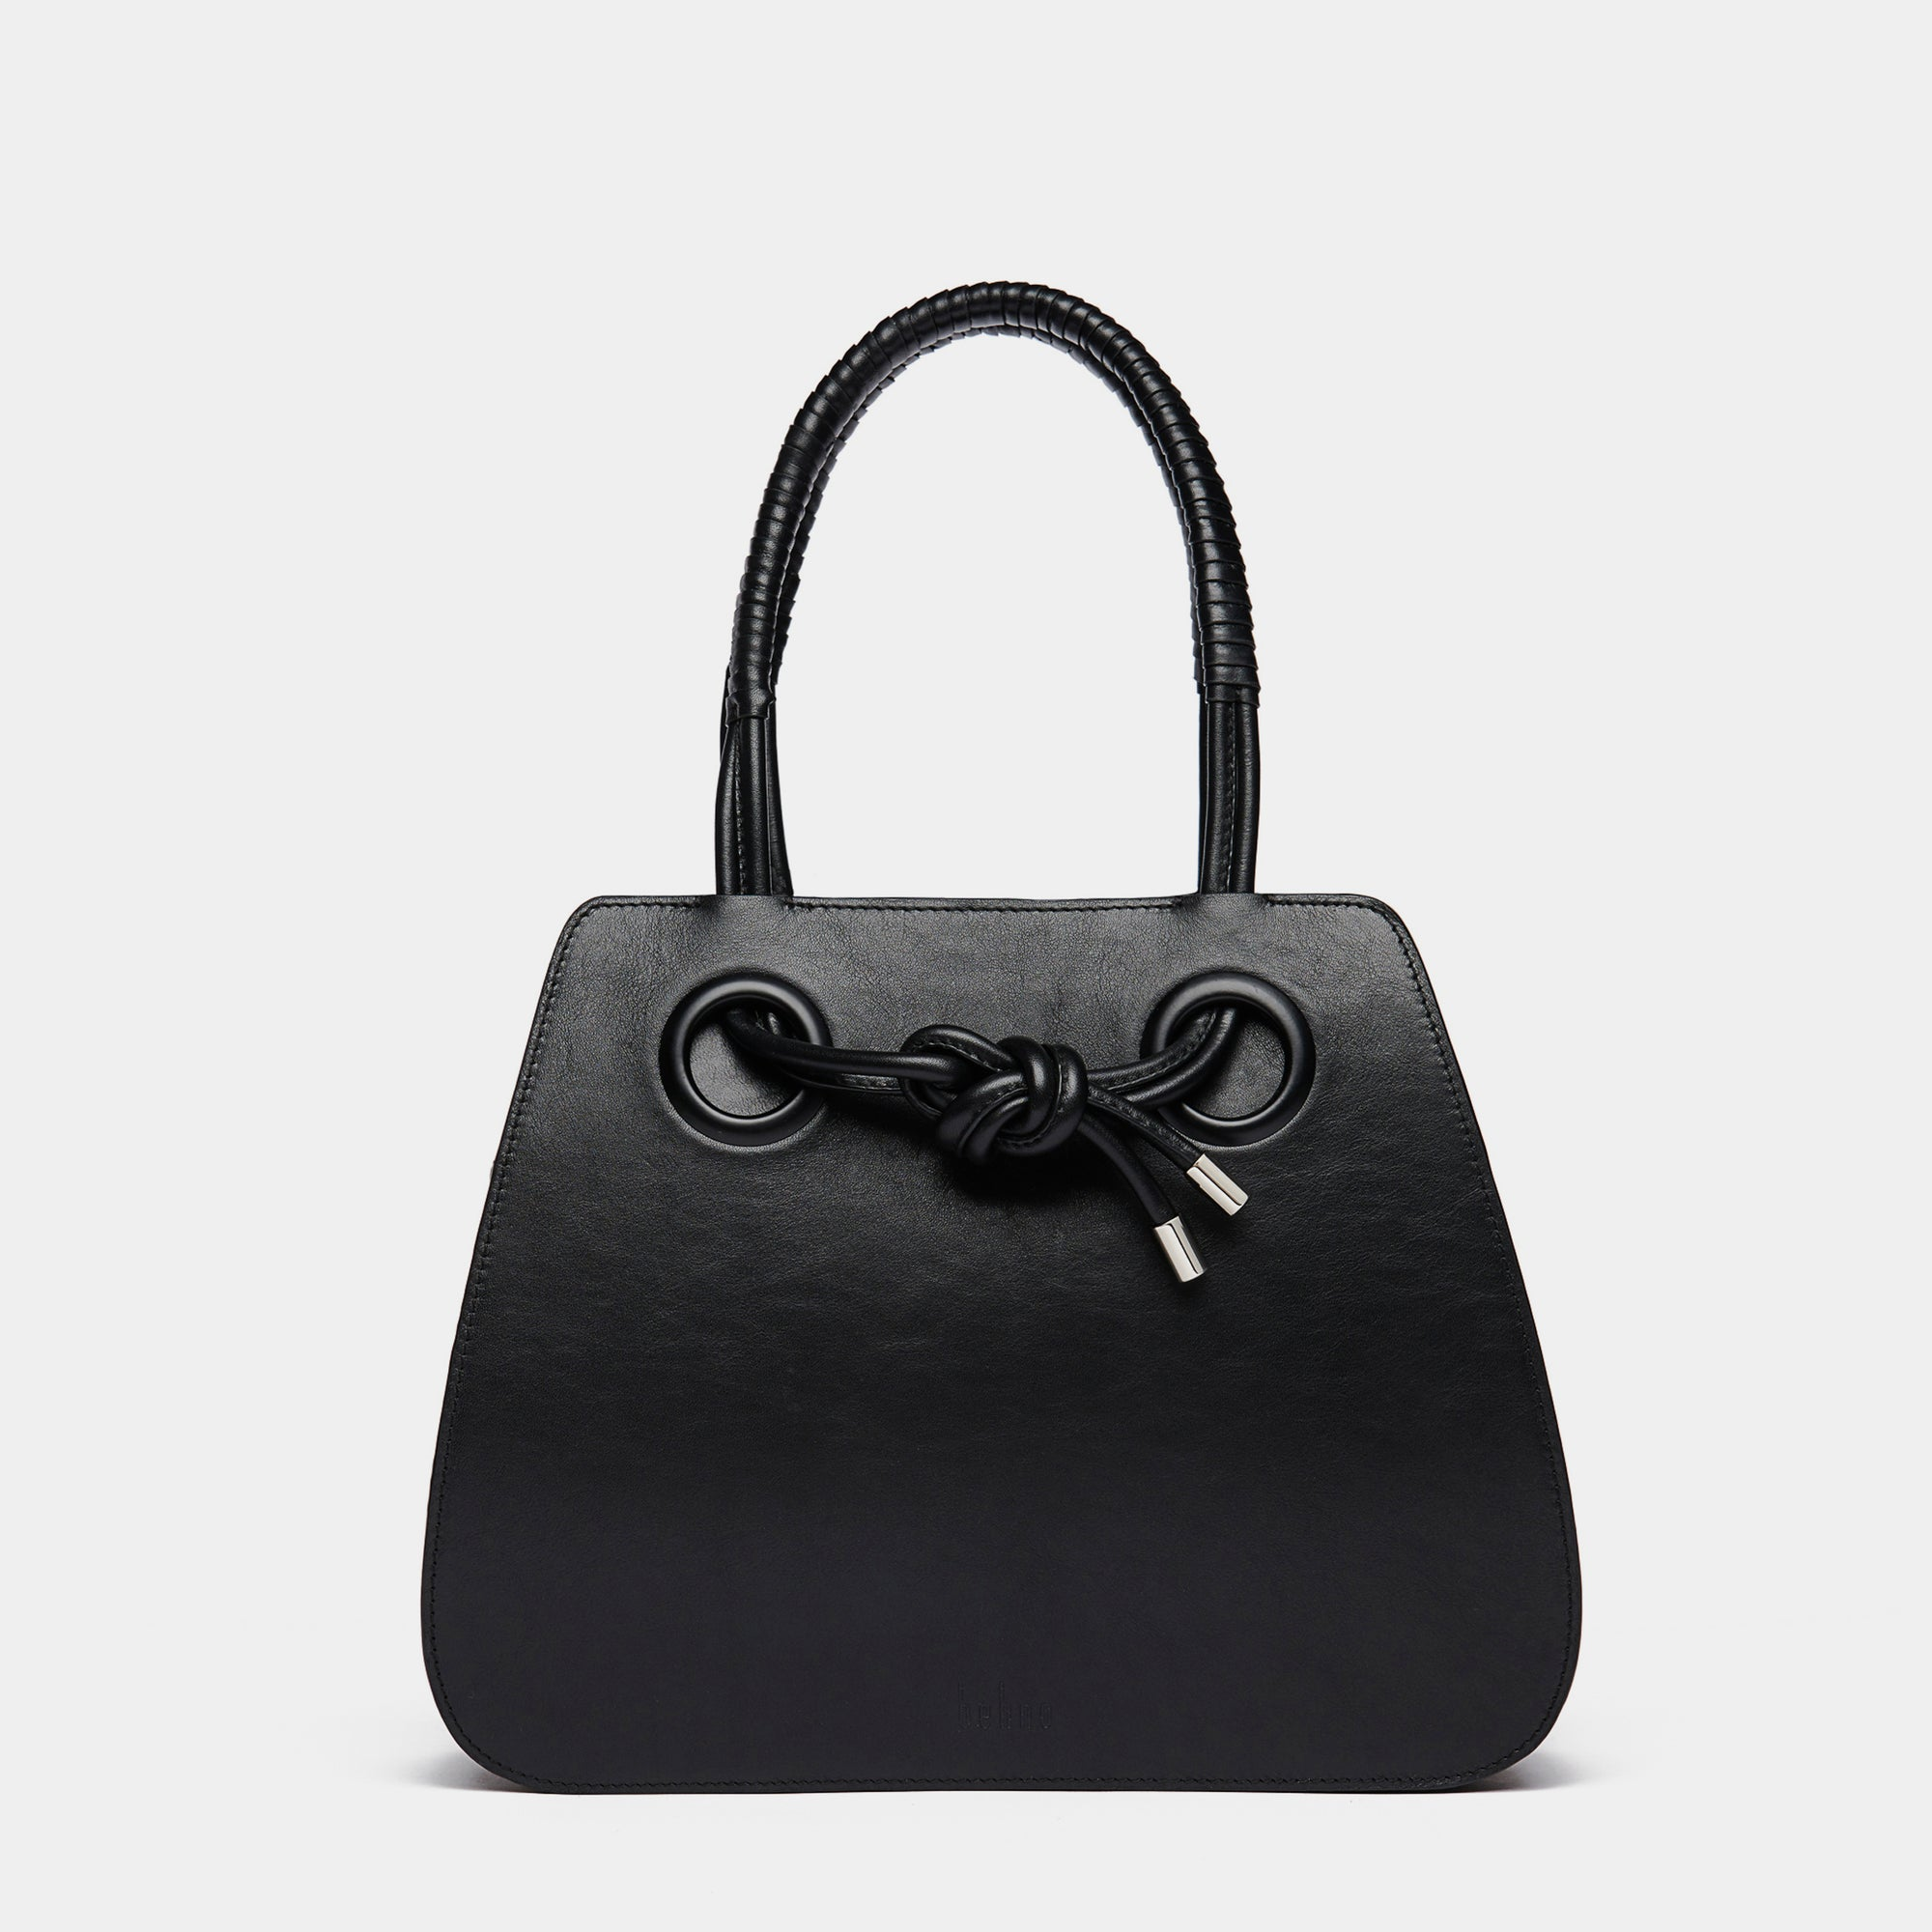 JACQUI BAG NAPPA BLACK